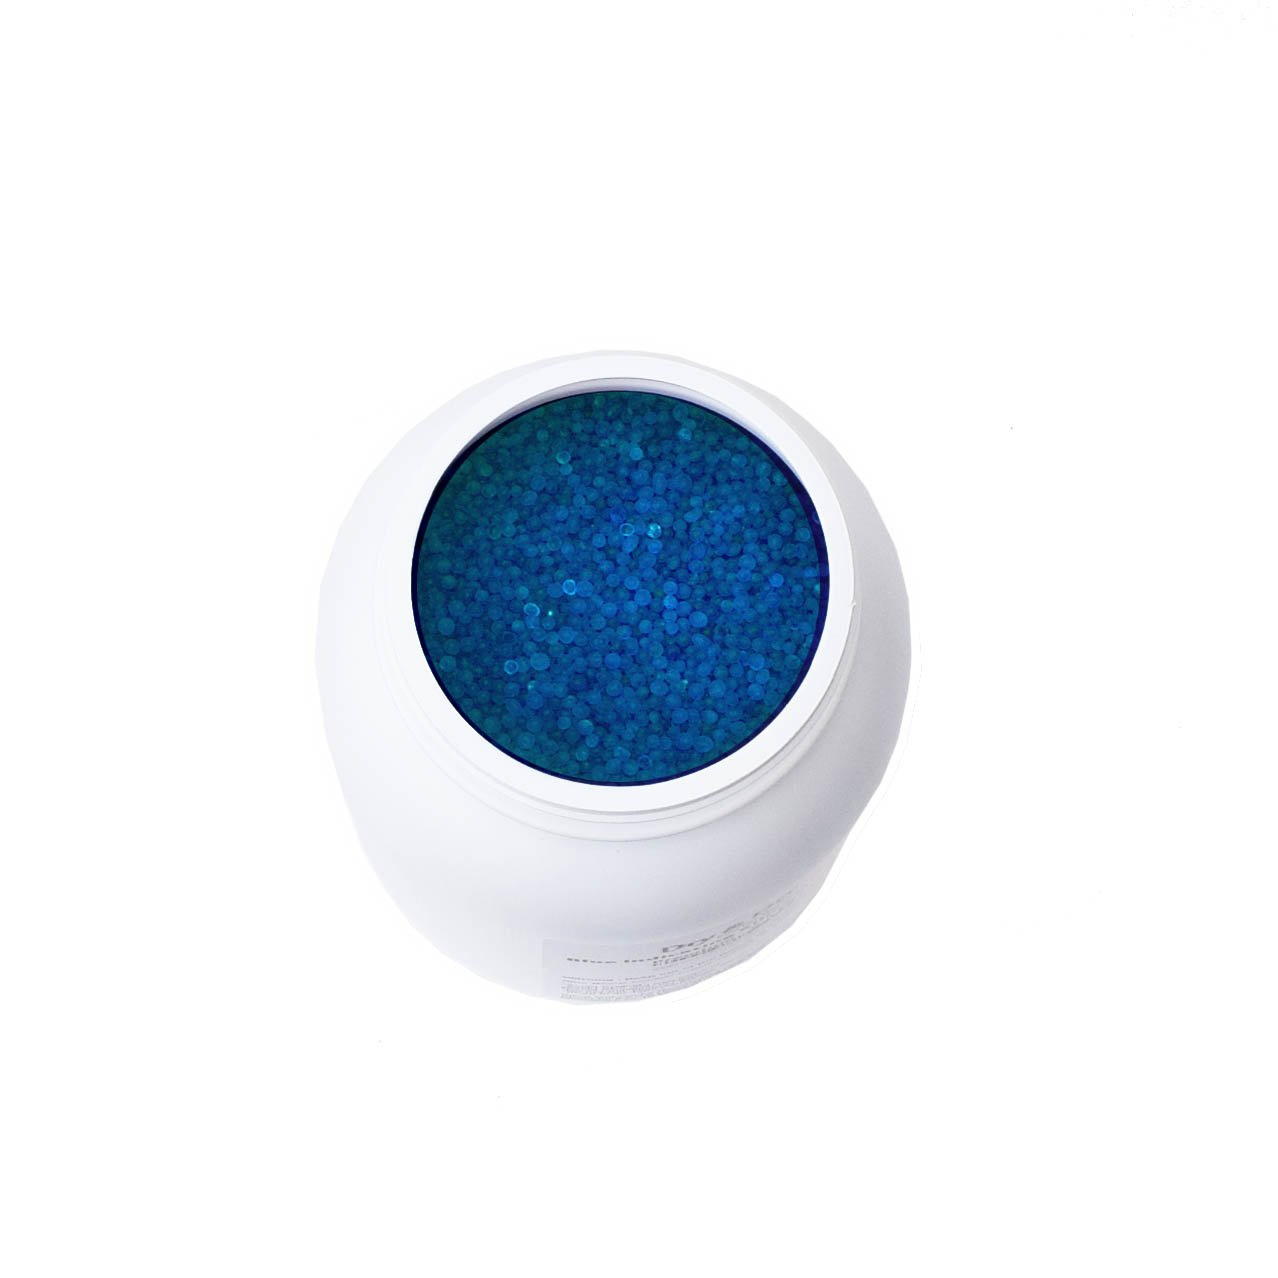 Dry & Dry [6 LBS] Blue Premium Indicating Silica Gel Beads(Industry Standard 2-4 mm) - Reusable Desiccant Beads Silica Gel Desiccant